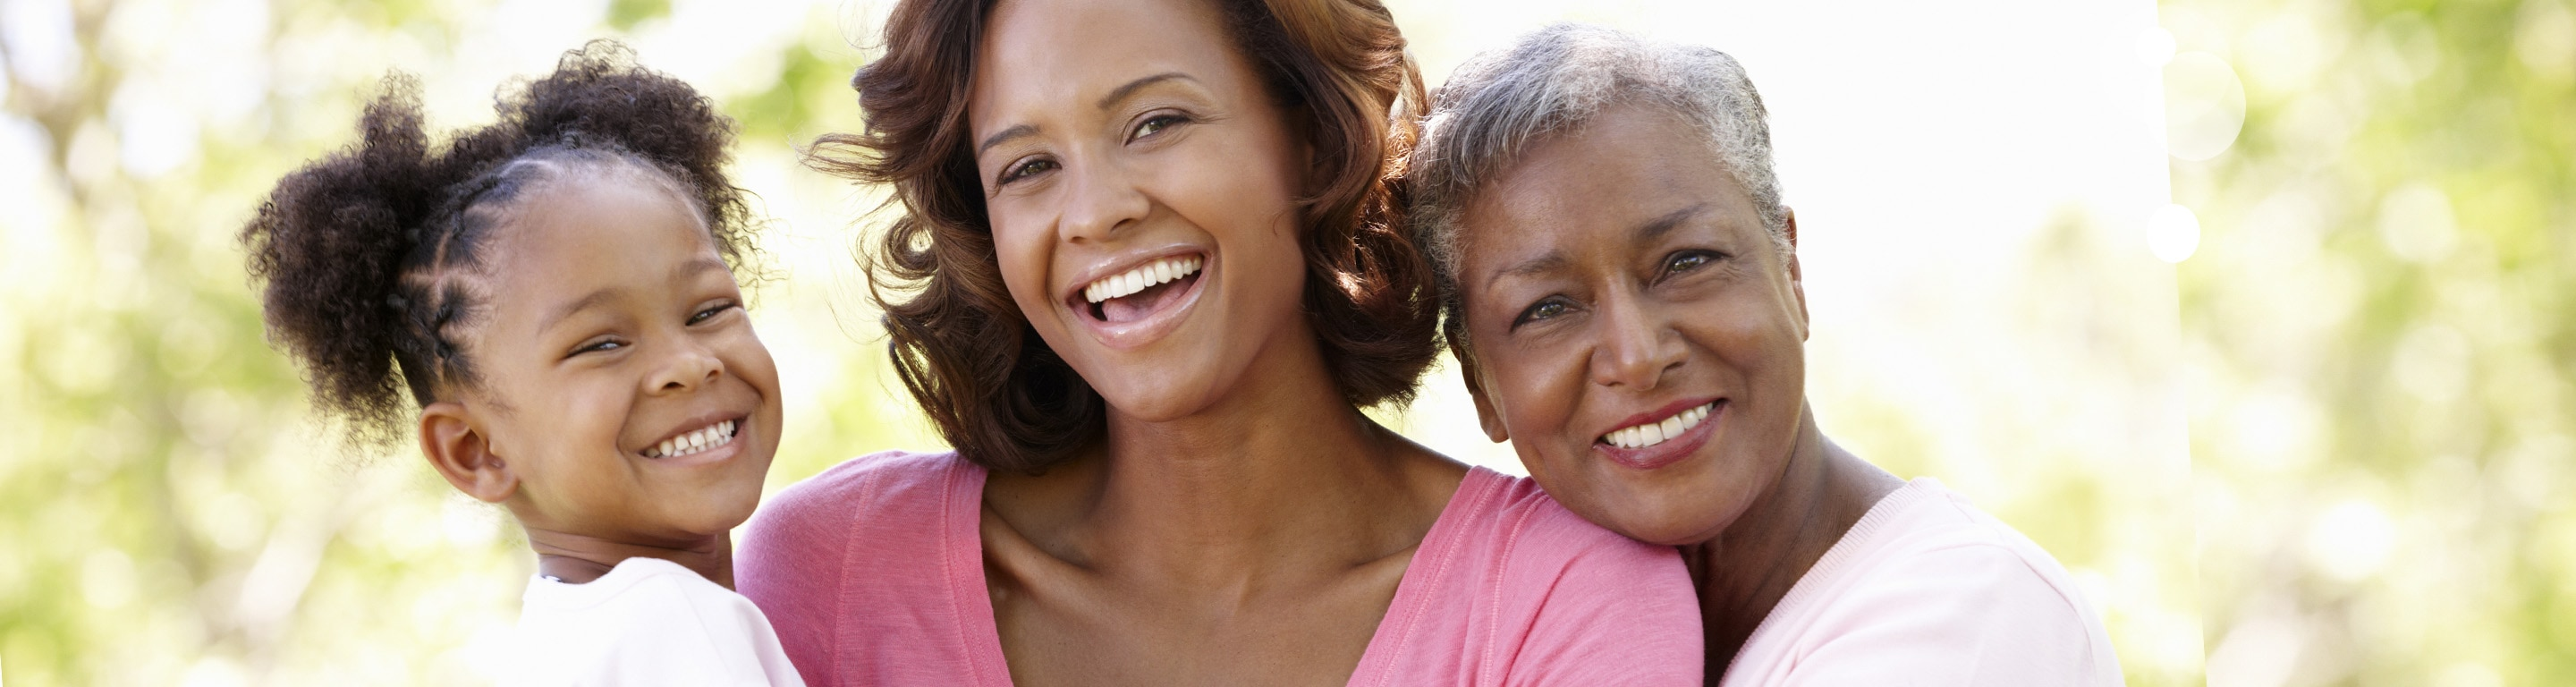 3 generations of women smiling and hugging - Weight Management - Axia Women's Health